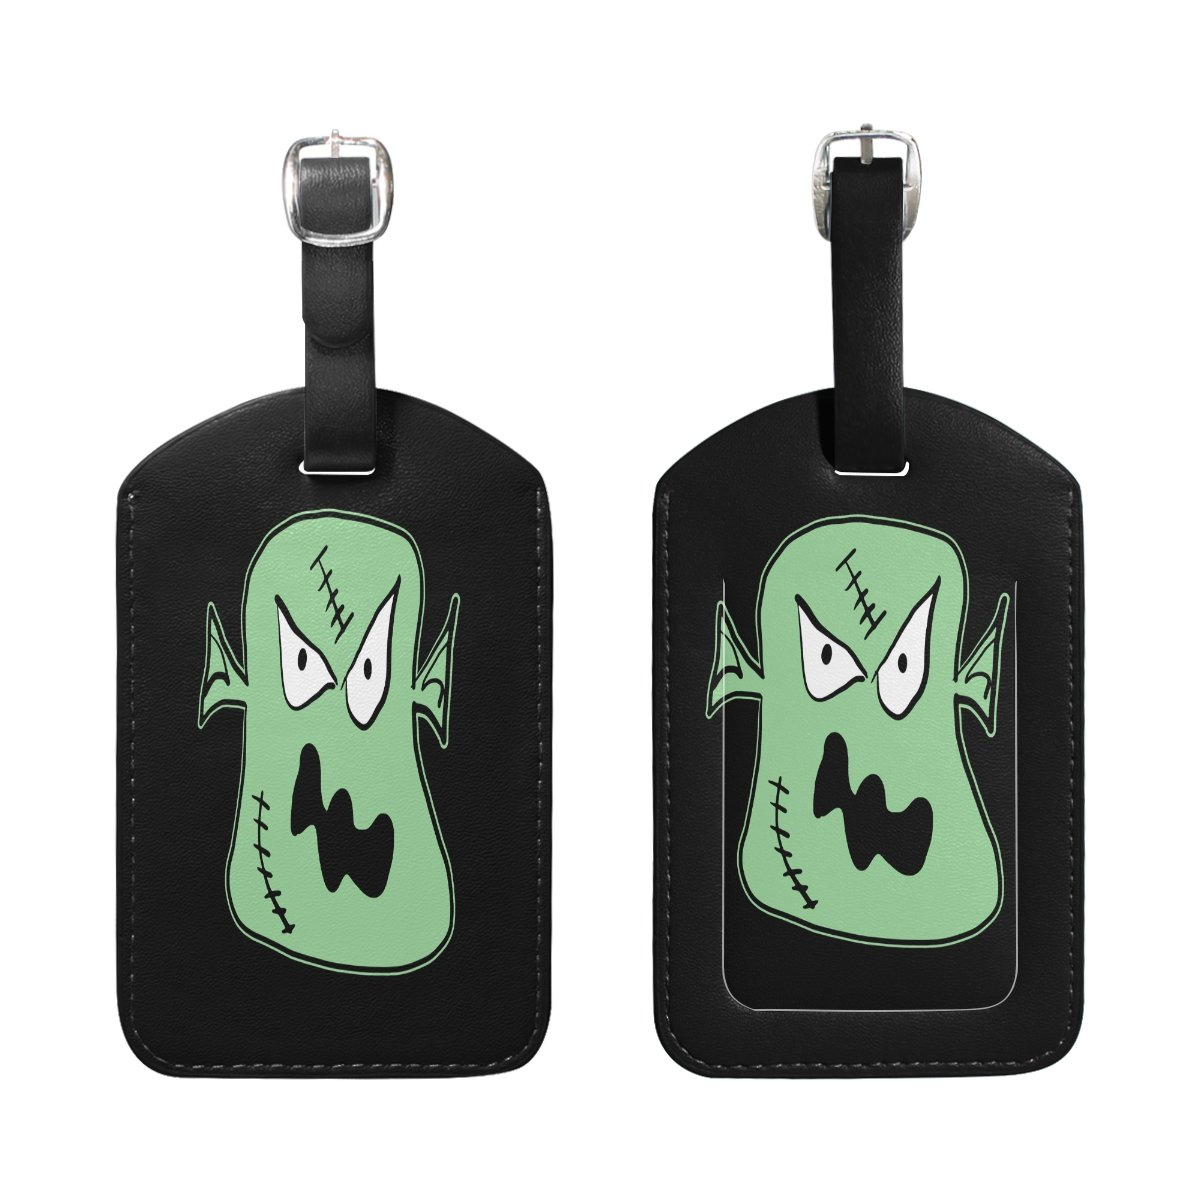 1Pcs Saobao Travel Luggage Tag Halloween Green Clown PU Leather Baggage Suitcase Travel ID Bag Tag